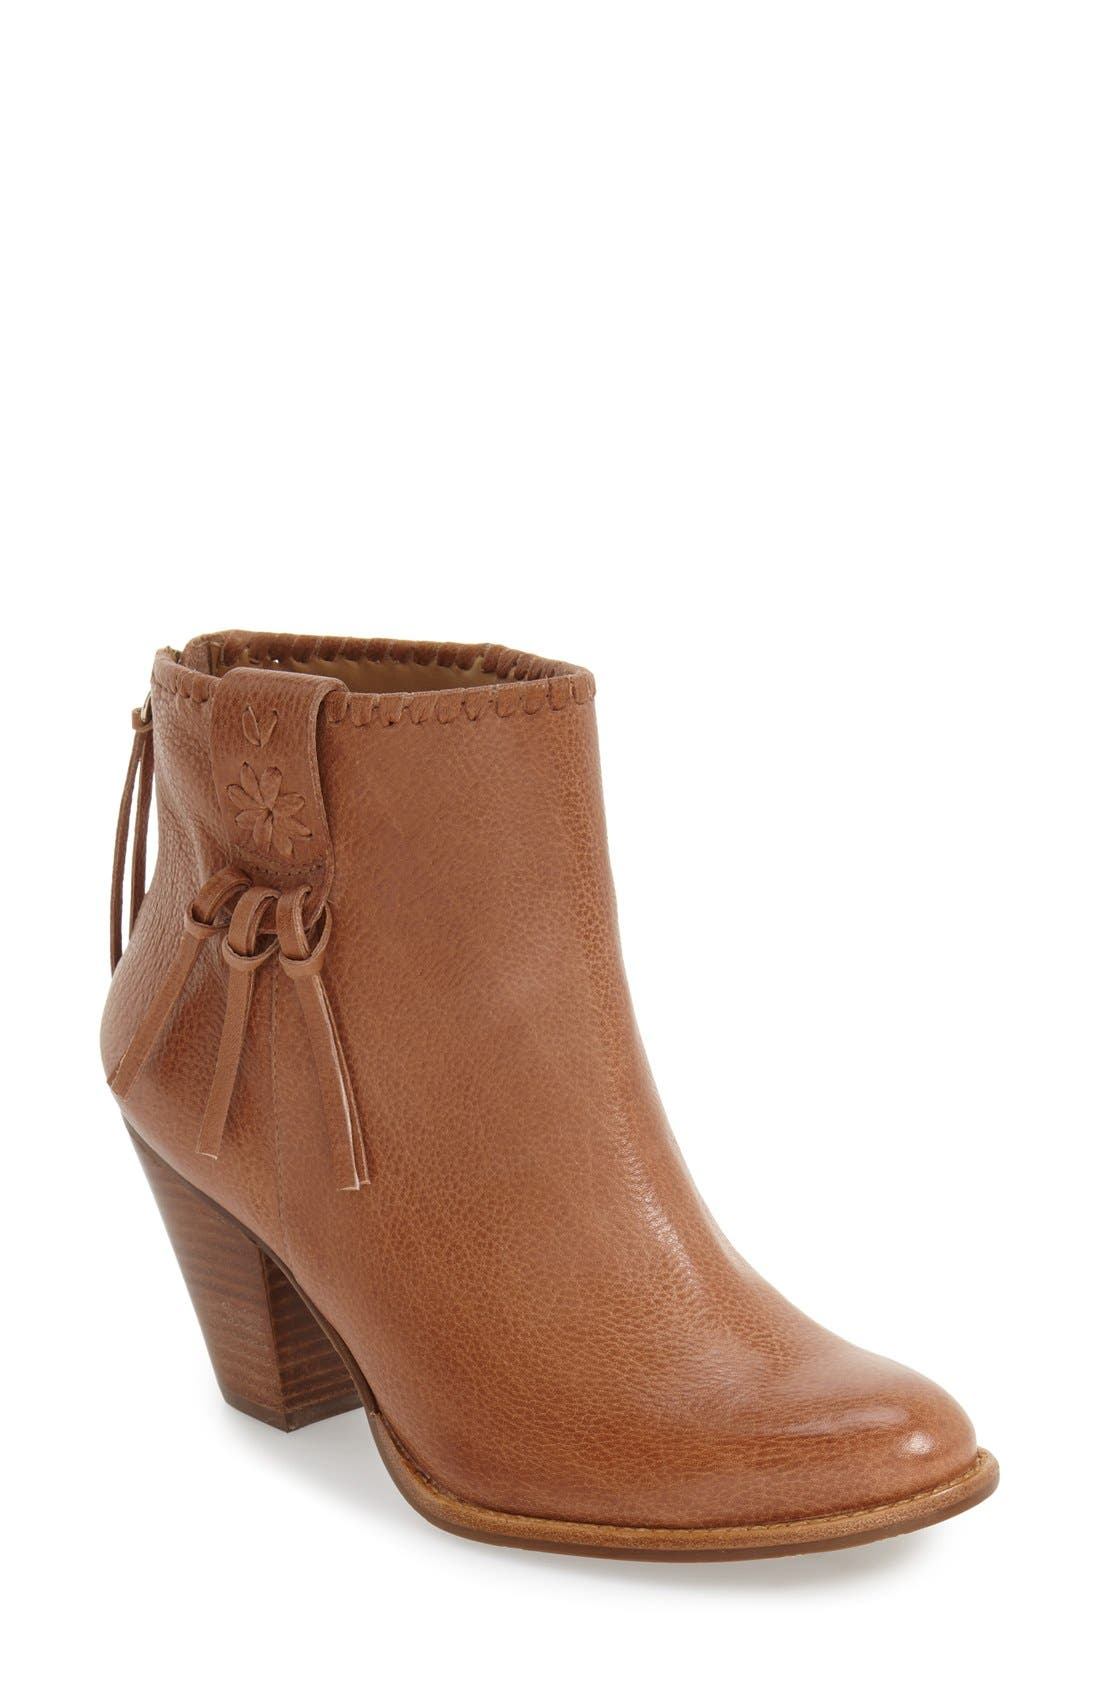 'Greer' Bootie,                             Main thumbnail 1, color,                             Oak Leather